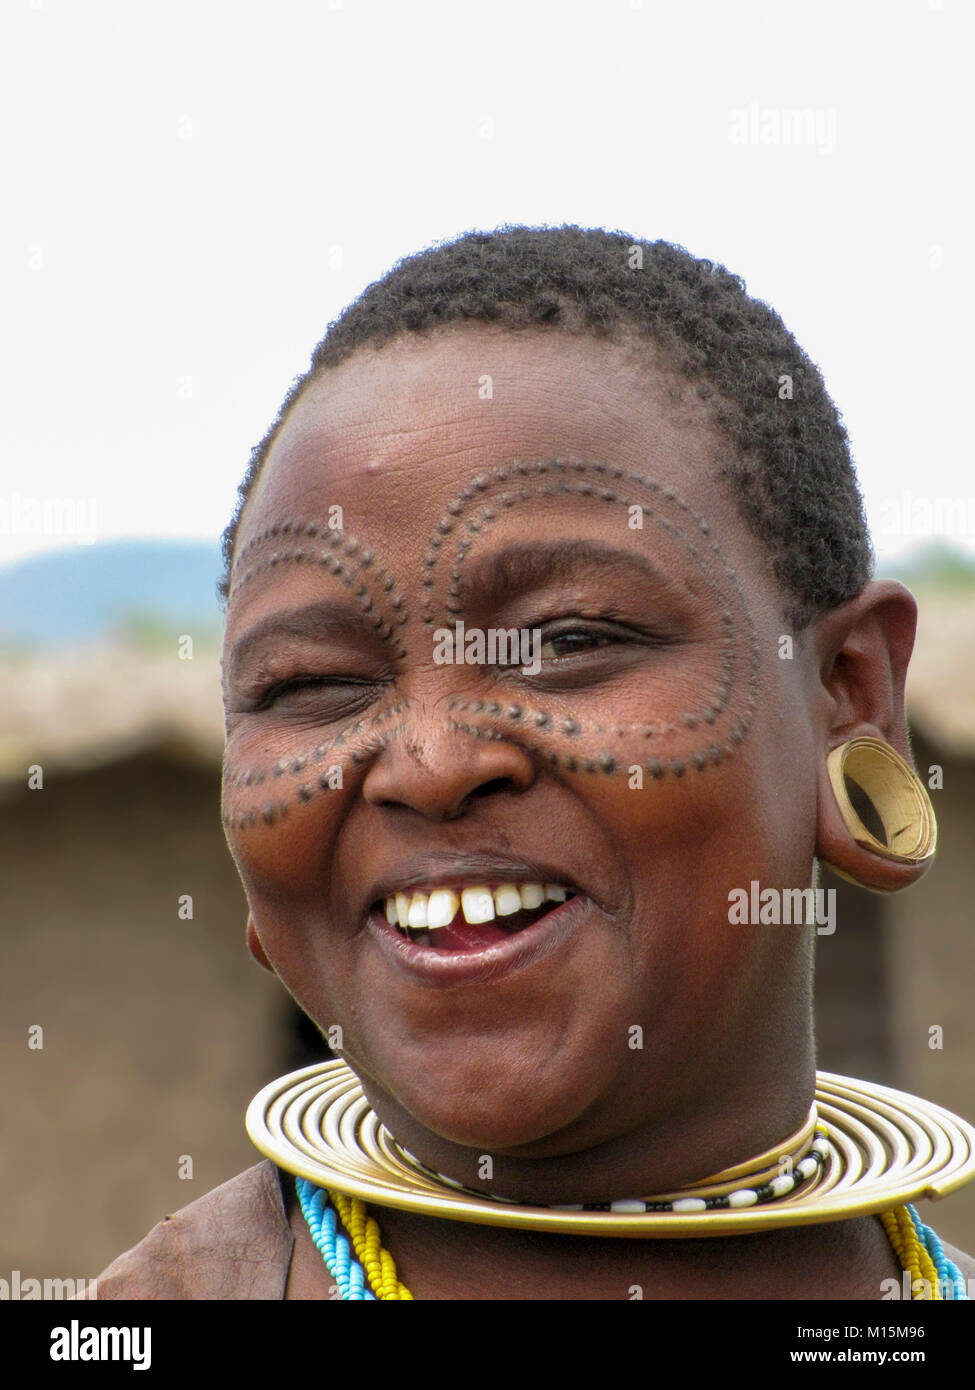 Portrait of a young Datoga woman with beauty scarring around her eyes. Photographed at Lake Eyasi, Tanzania - Stock Image